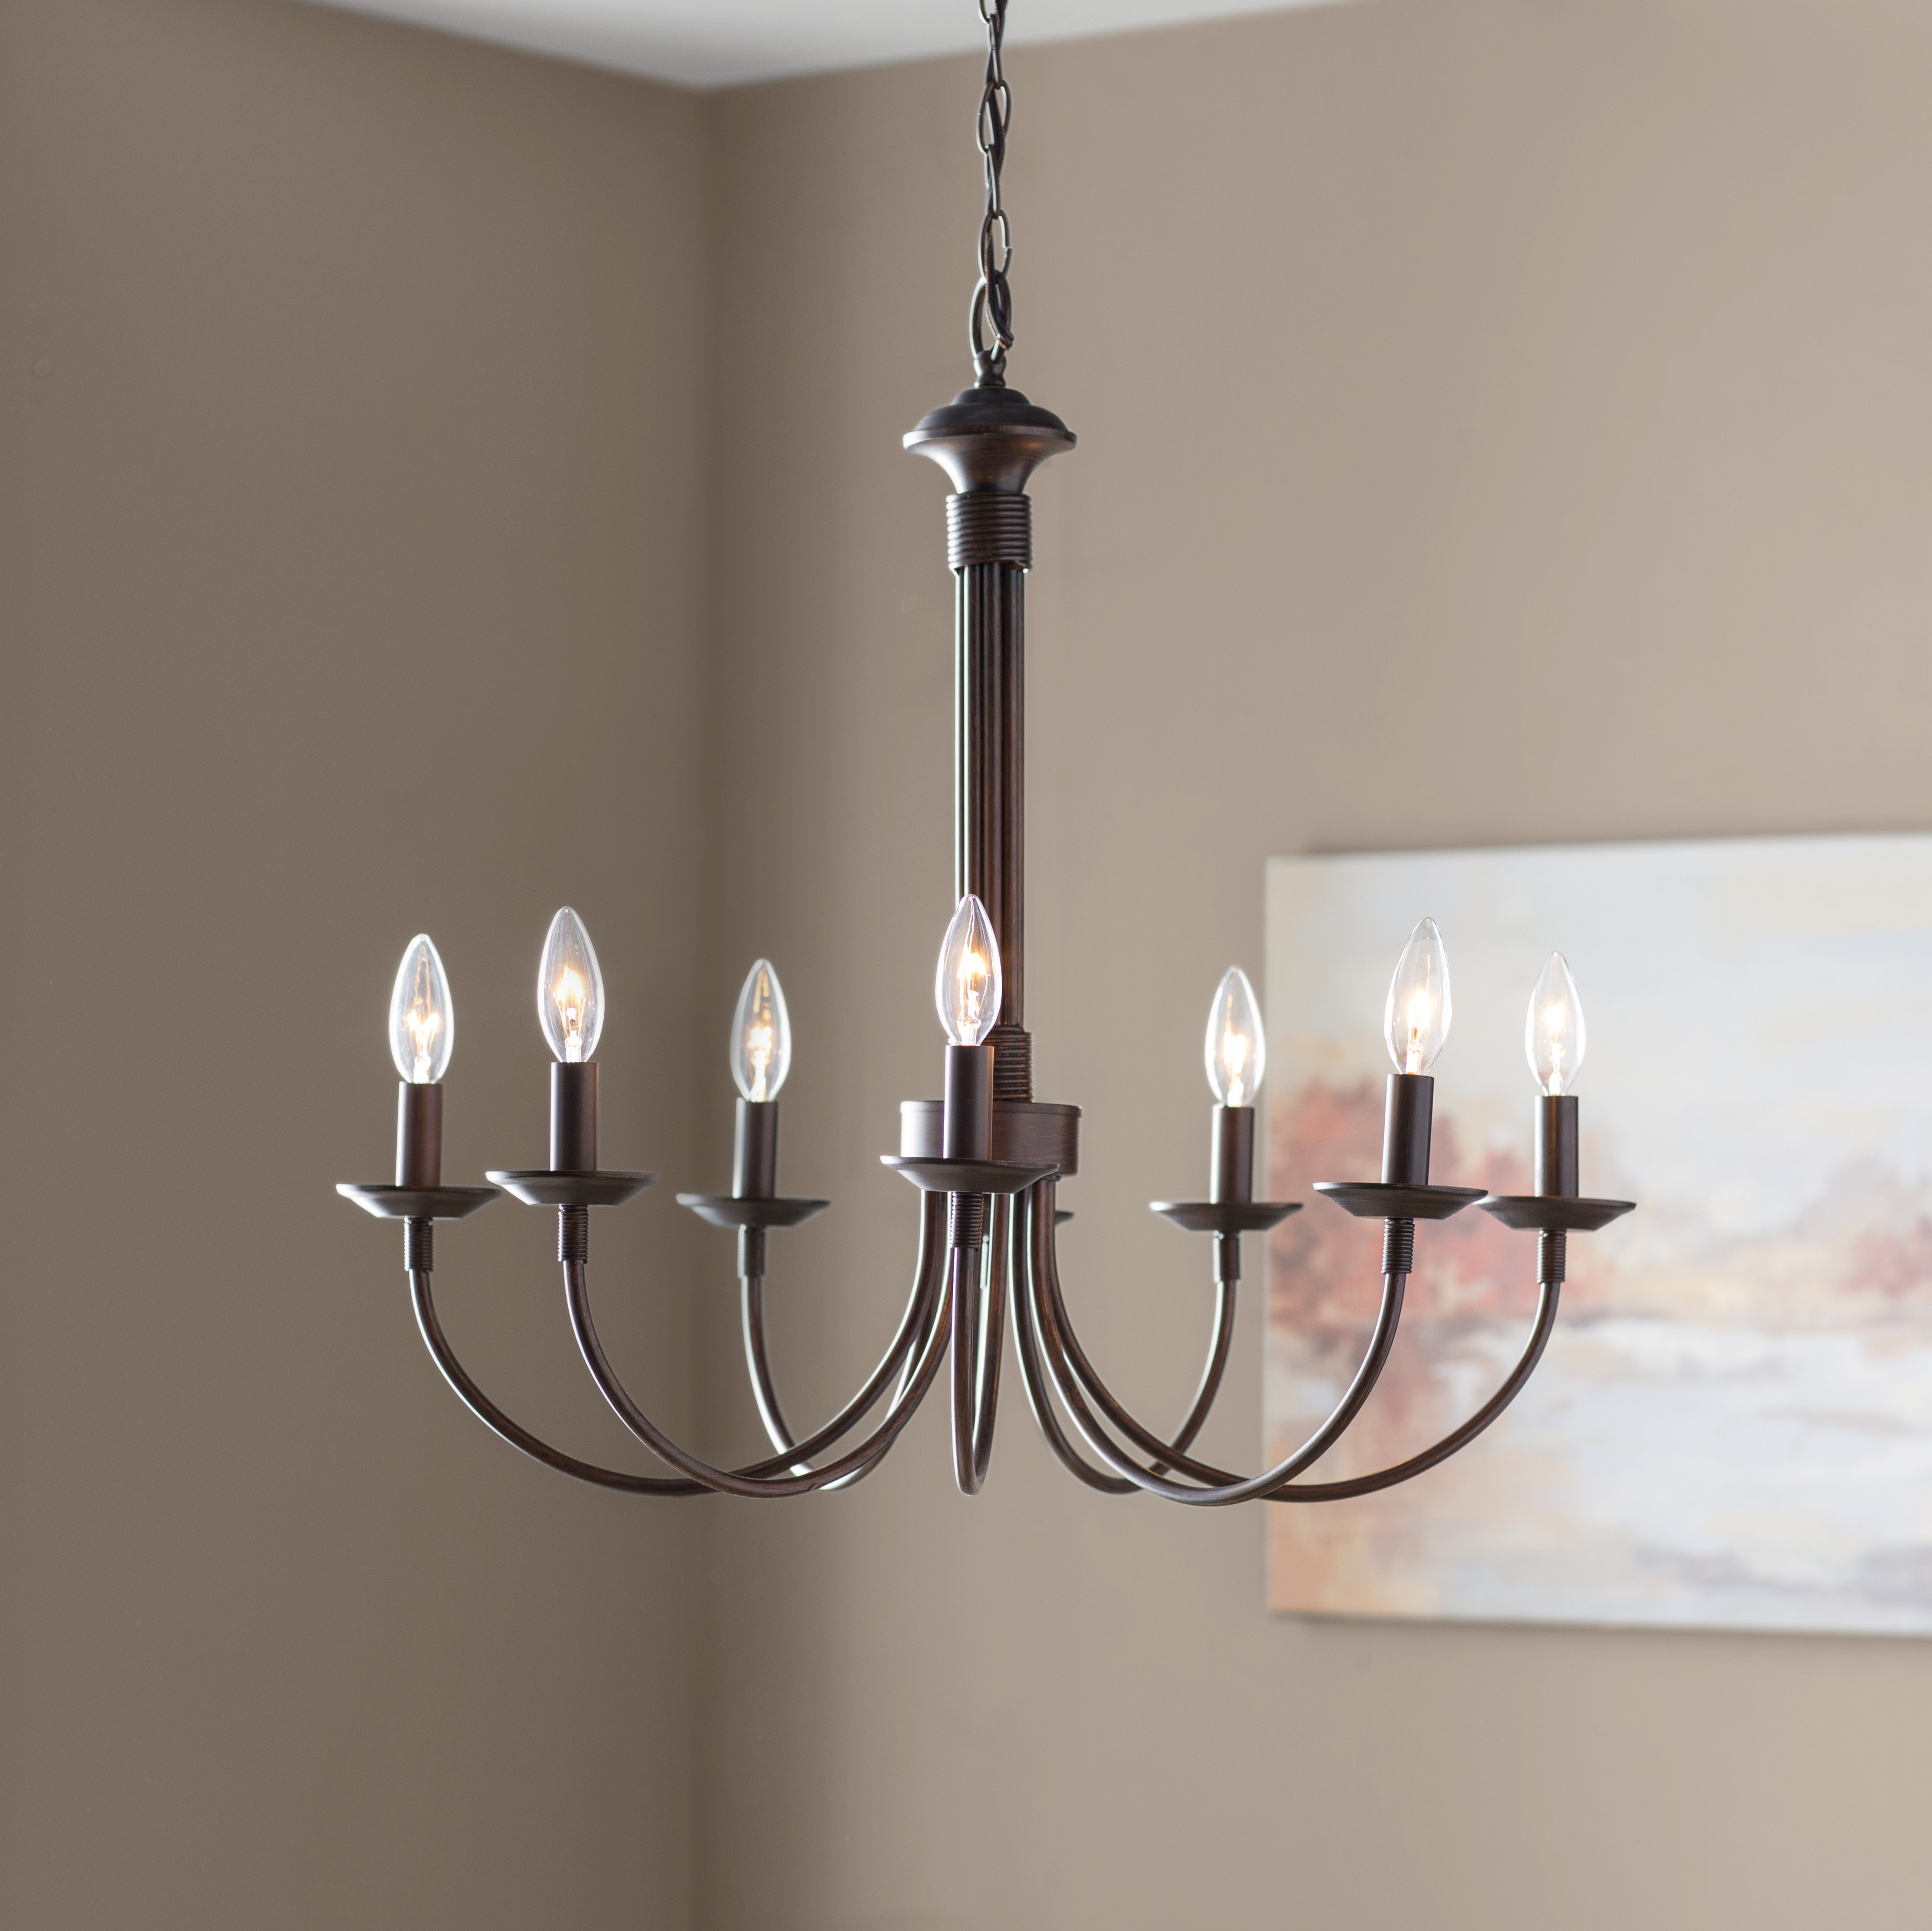 Laurel Foundry Modern Farmhouse Shaylee 8-Light Candle Style Chandelier in Annuziata 3-Light Unique/statement Chandeliers (Image 19 of 30)